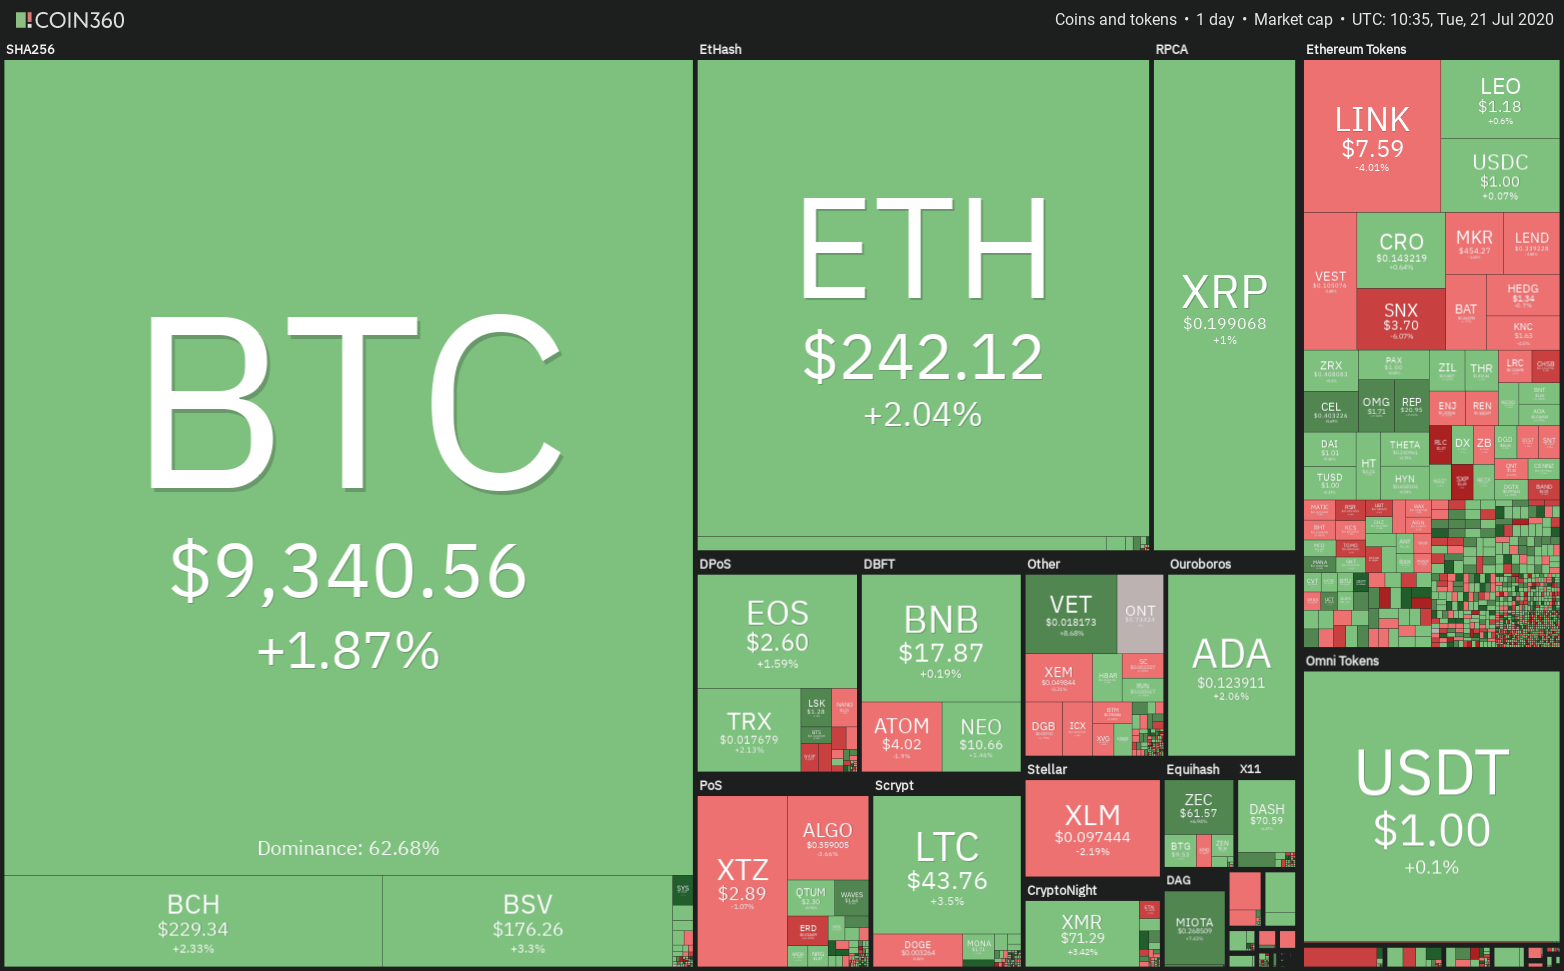 The performance of top cryptocurrencies in the last 24 hours